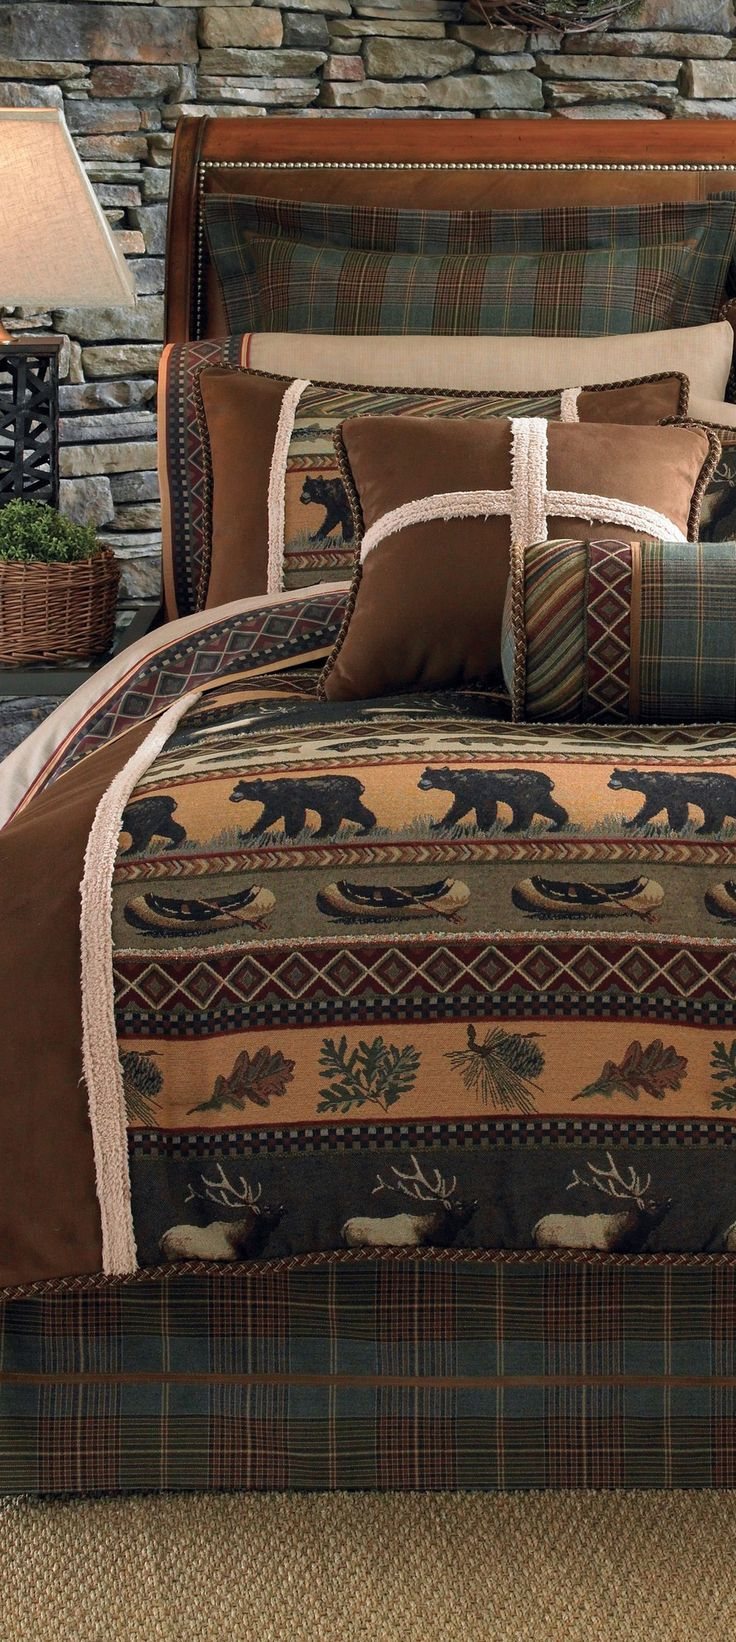 Best 25+ Log cabin furniture ideas on Pinterest | Rustic rugs, Log ...